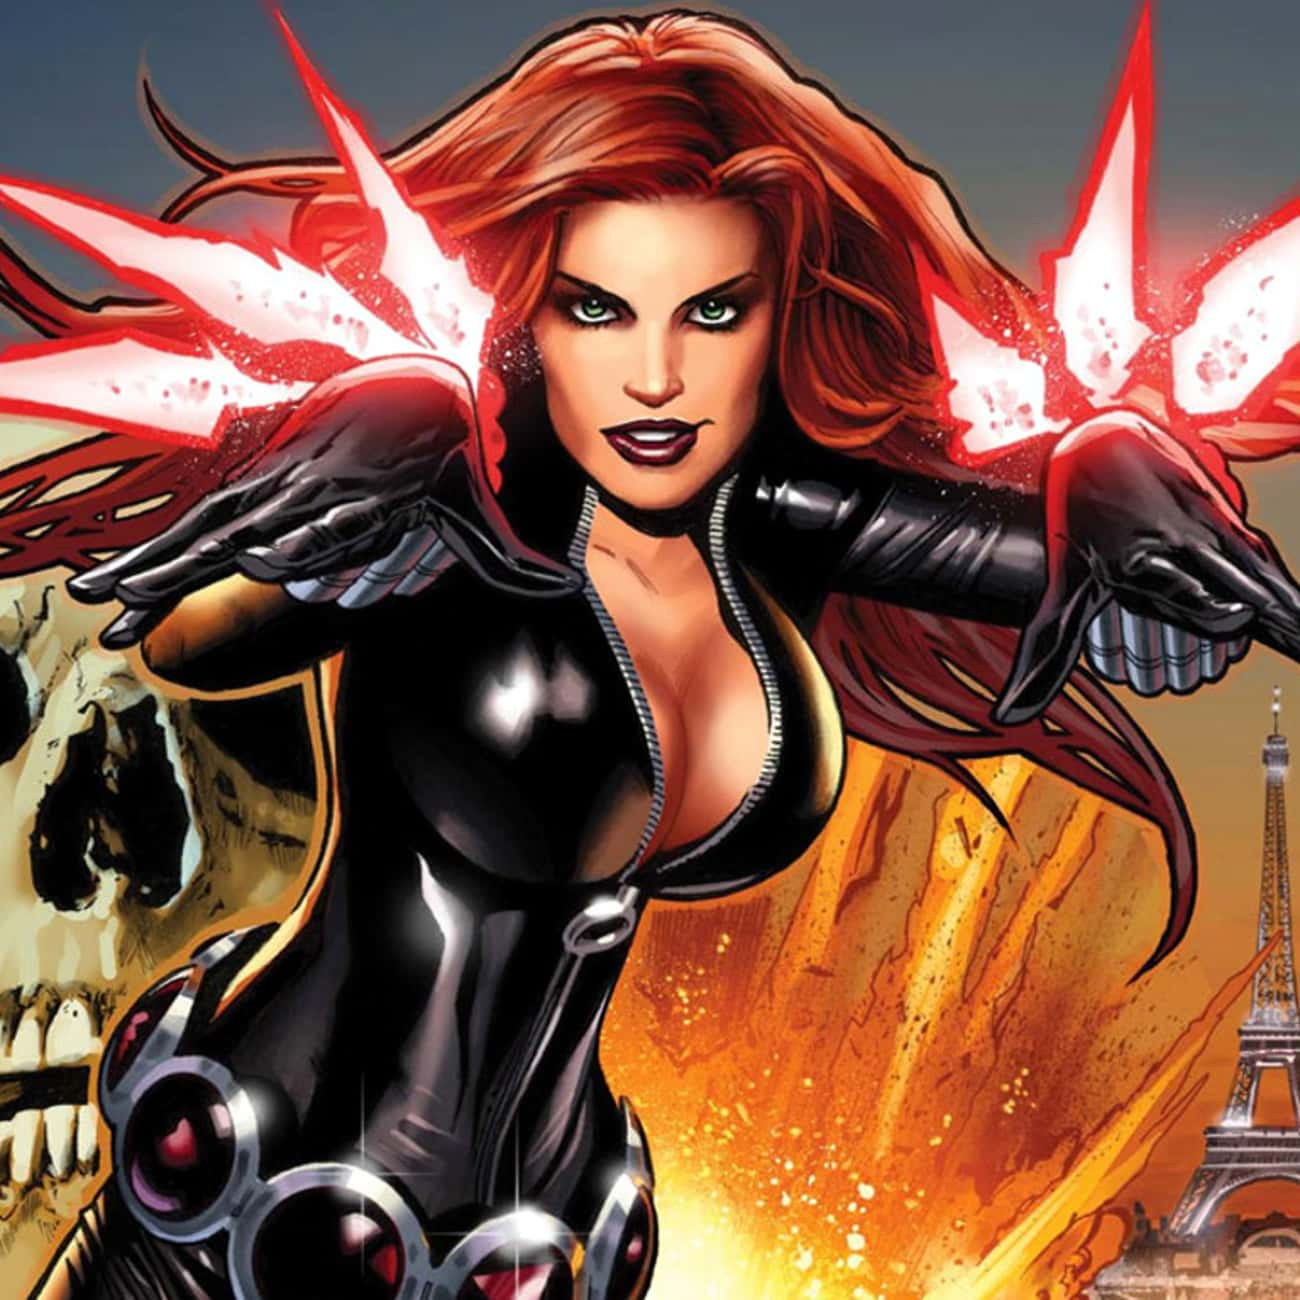 Black Widow is listed (or ranked) 4 on the list Comic Book Characters Who Deserve Their Own Video Games